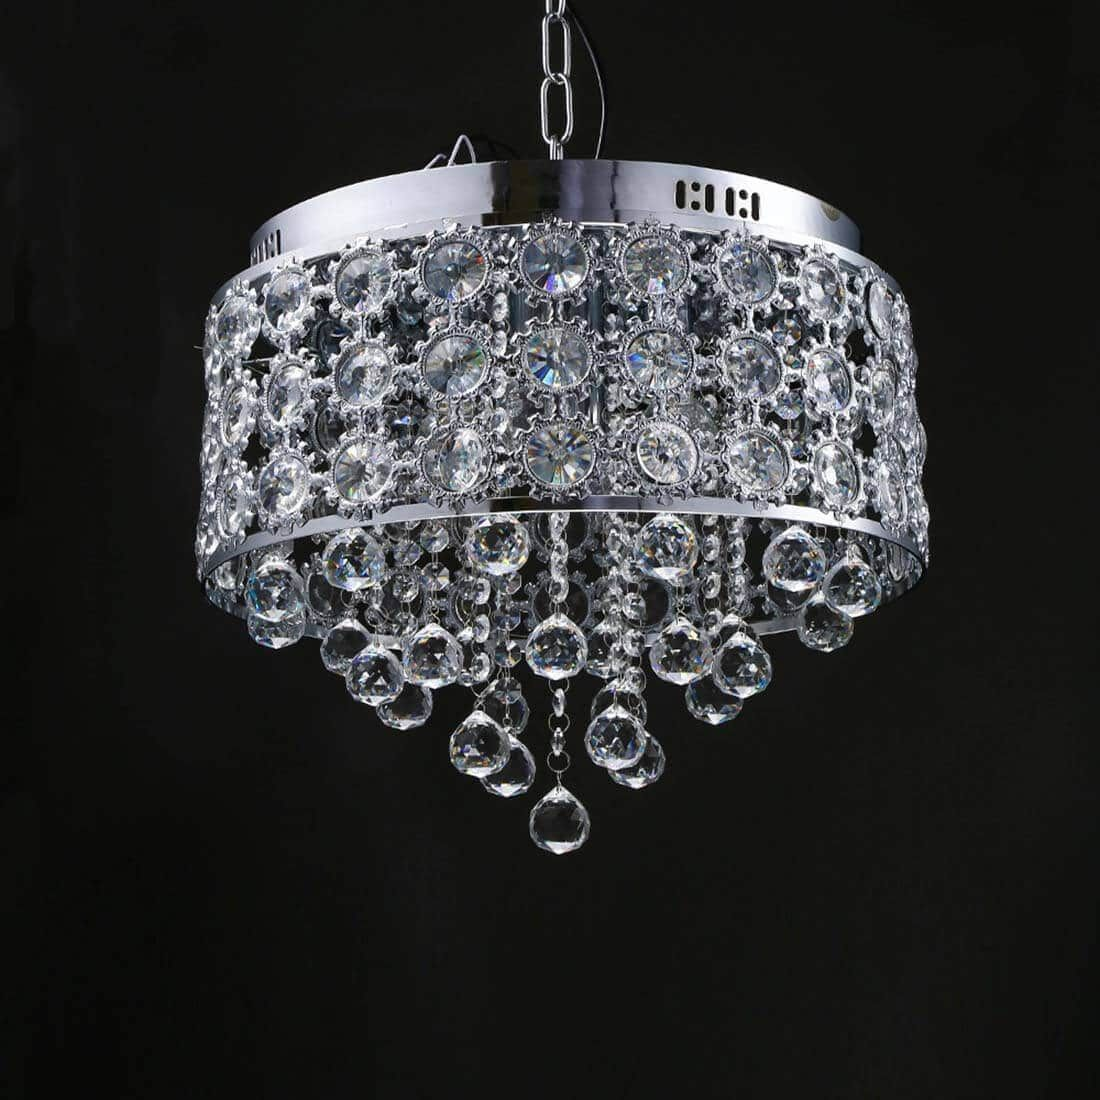 crystal-led-living-room-light